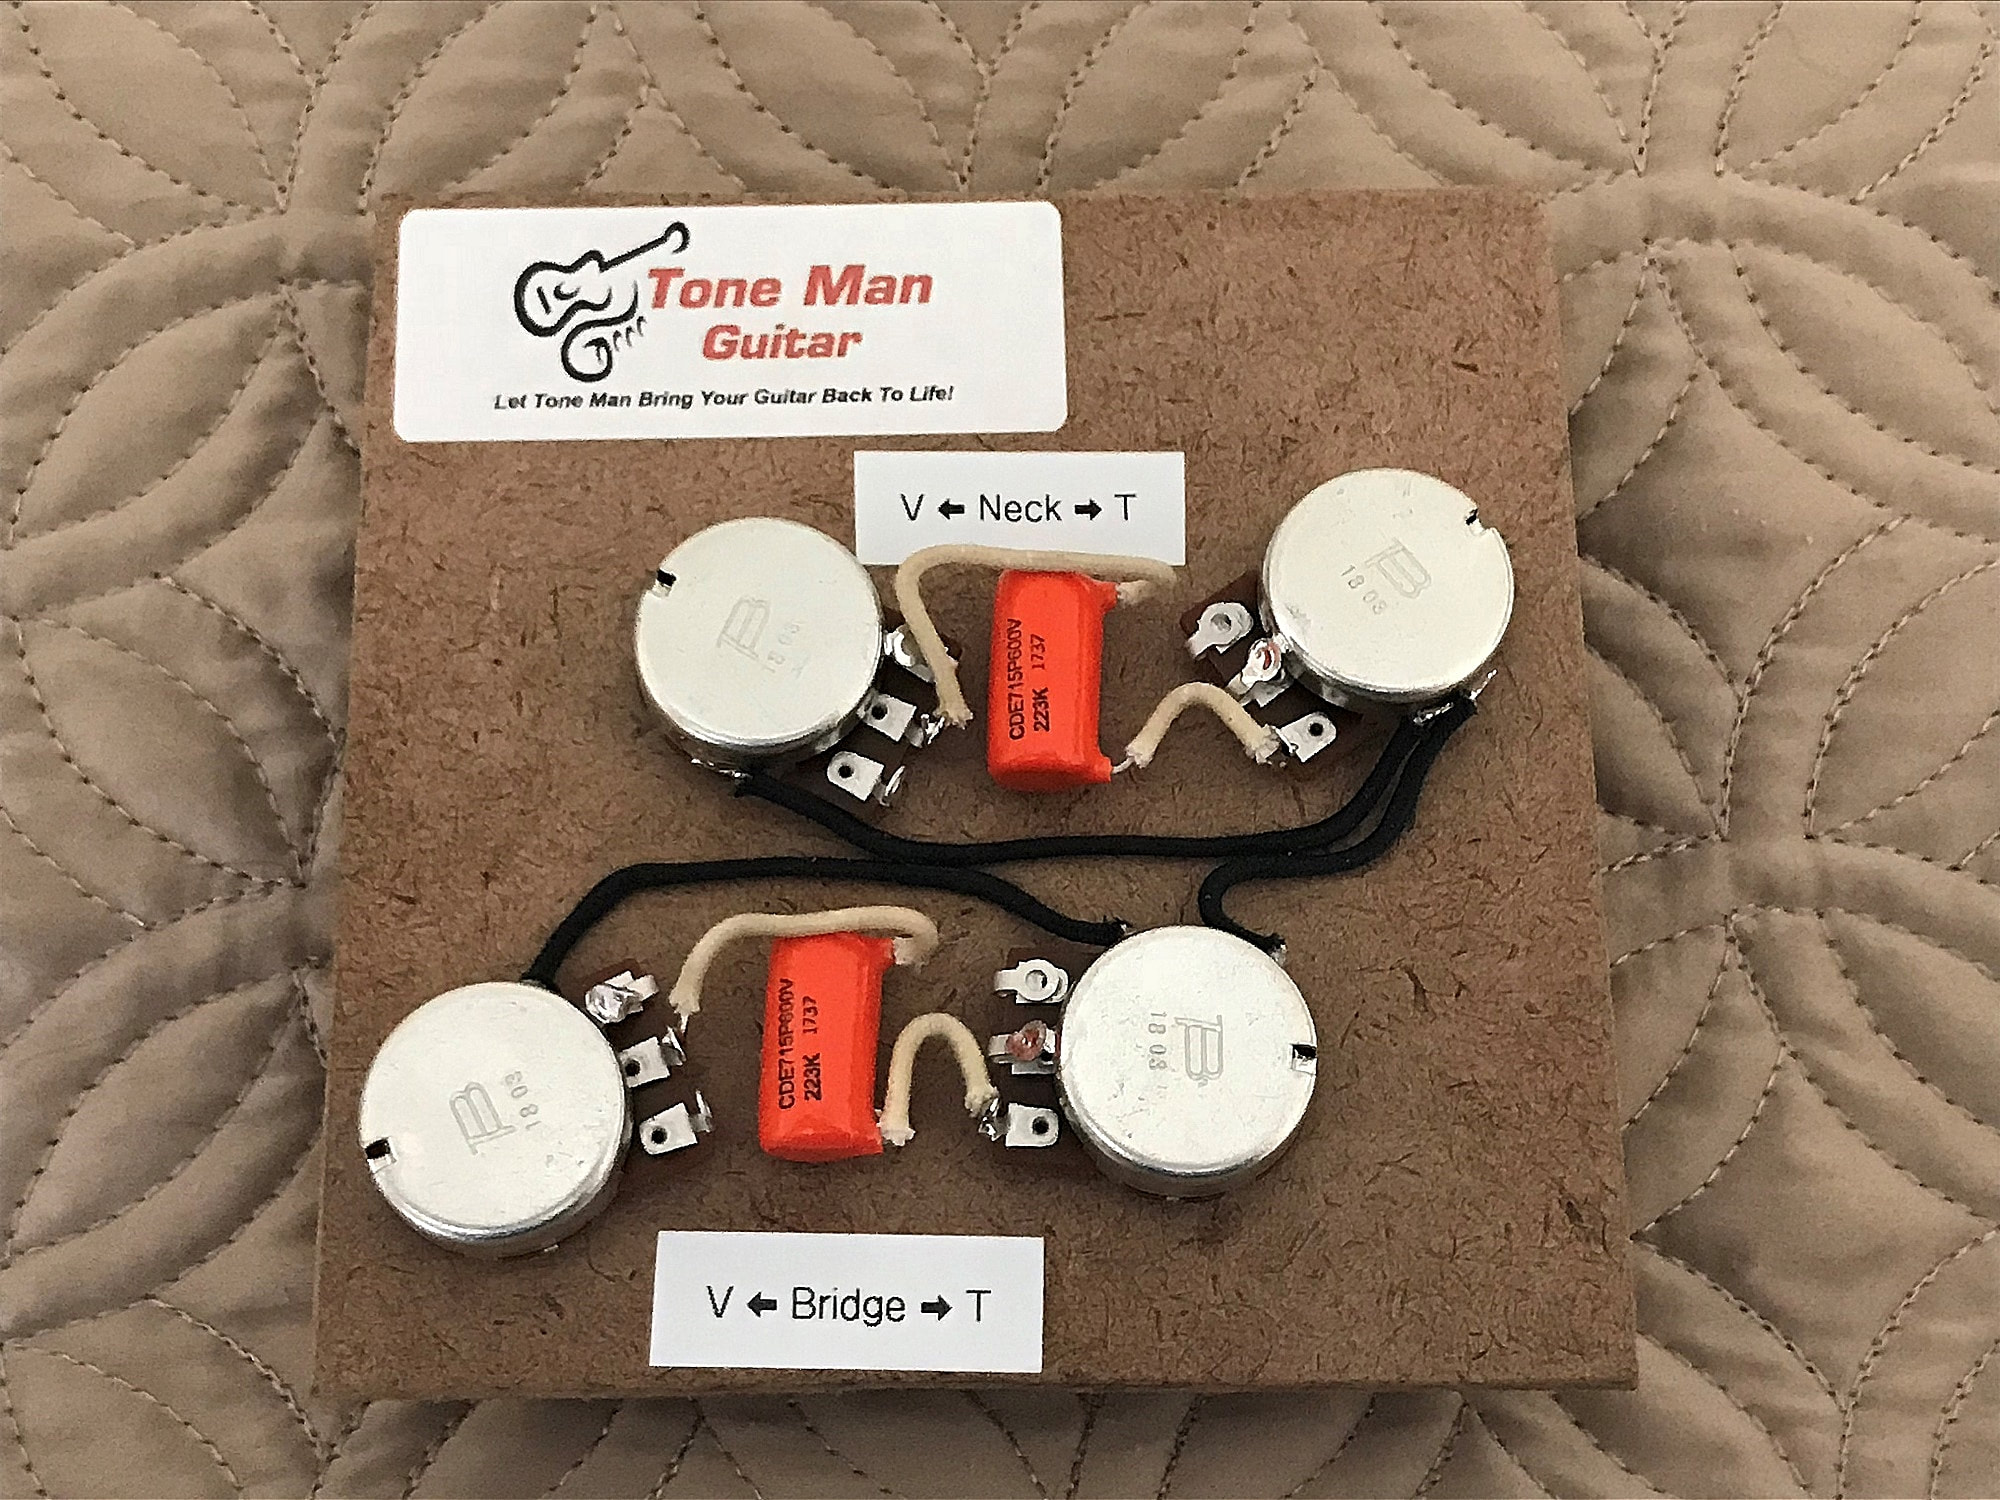 gibson les paul prewired wiring guitar kit with orange ... gibson les paul standard wiring harness gibson les paul prewired 50s wiring harness long shaft